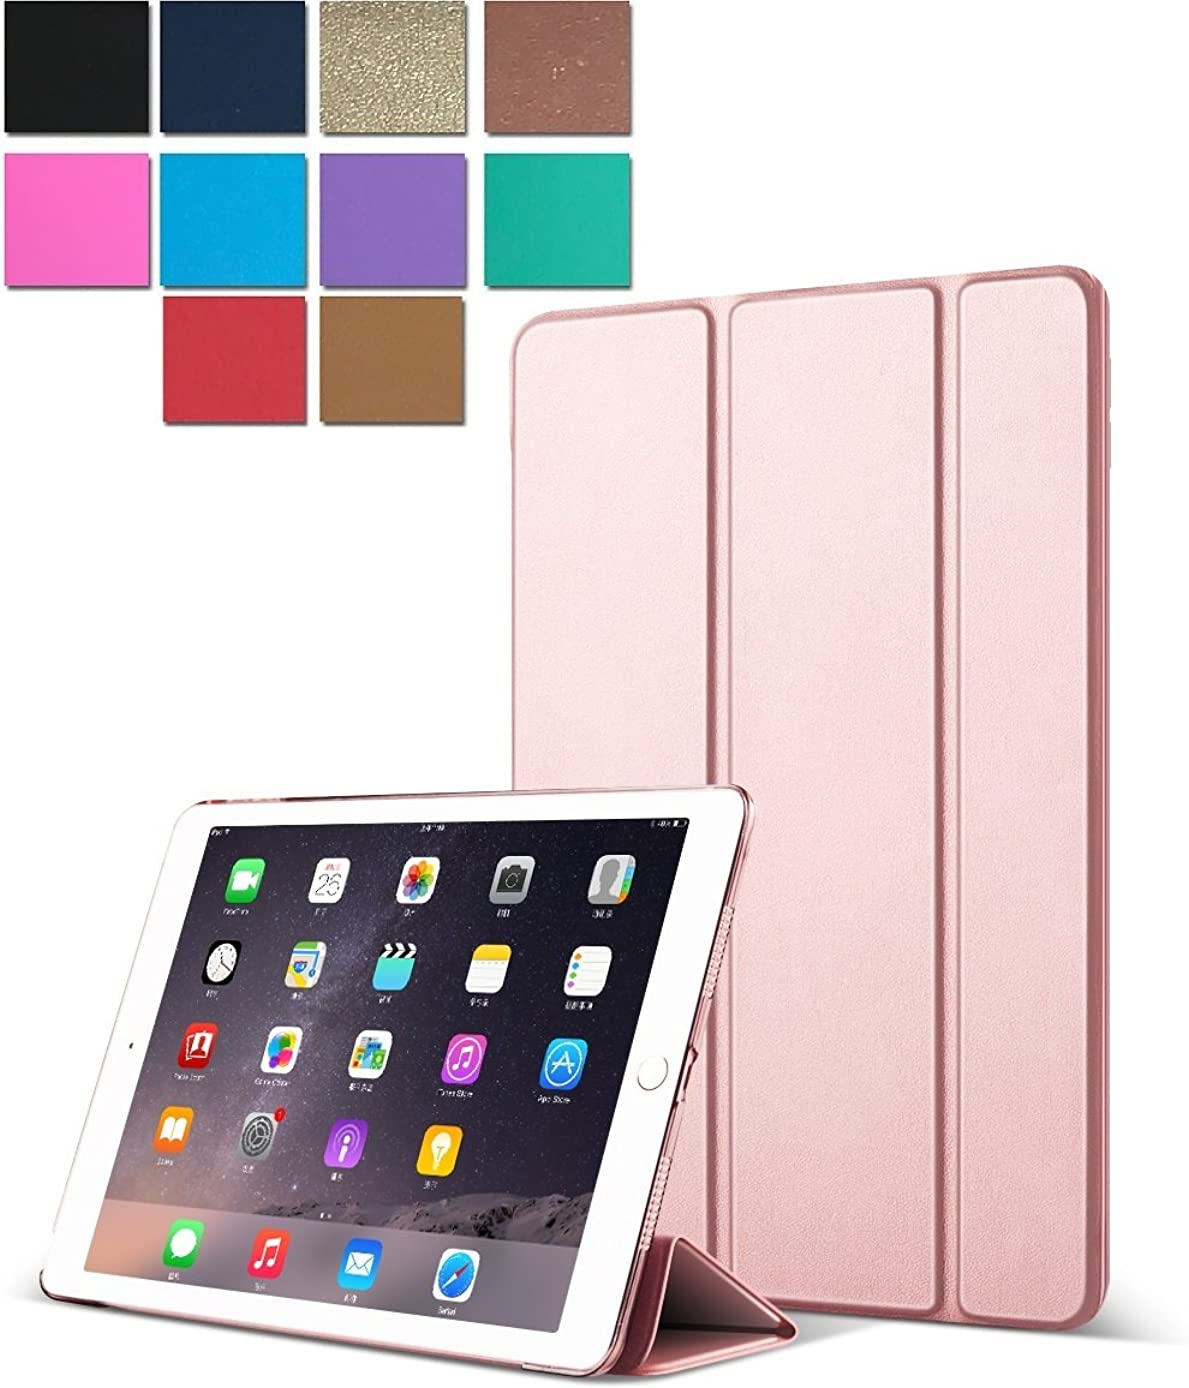 DuraSafe Cases for iPad PRO 12.9 Inch 1 Gen - 2015 [ A1584 A1652 ] Smart Cover with Translucent Back - Rose Gold (Trifold)